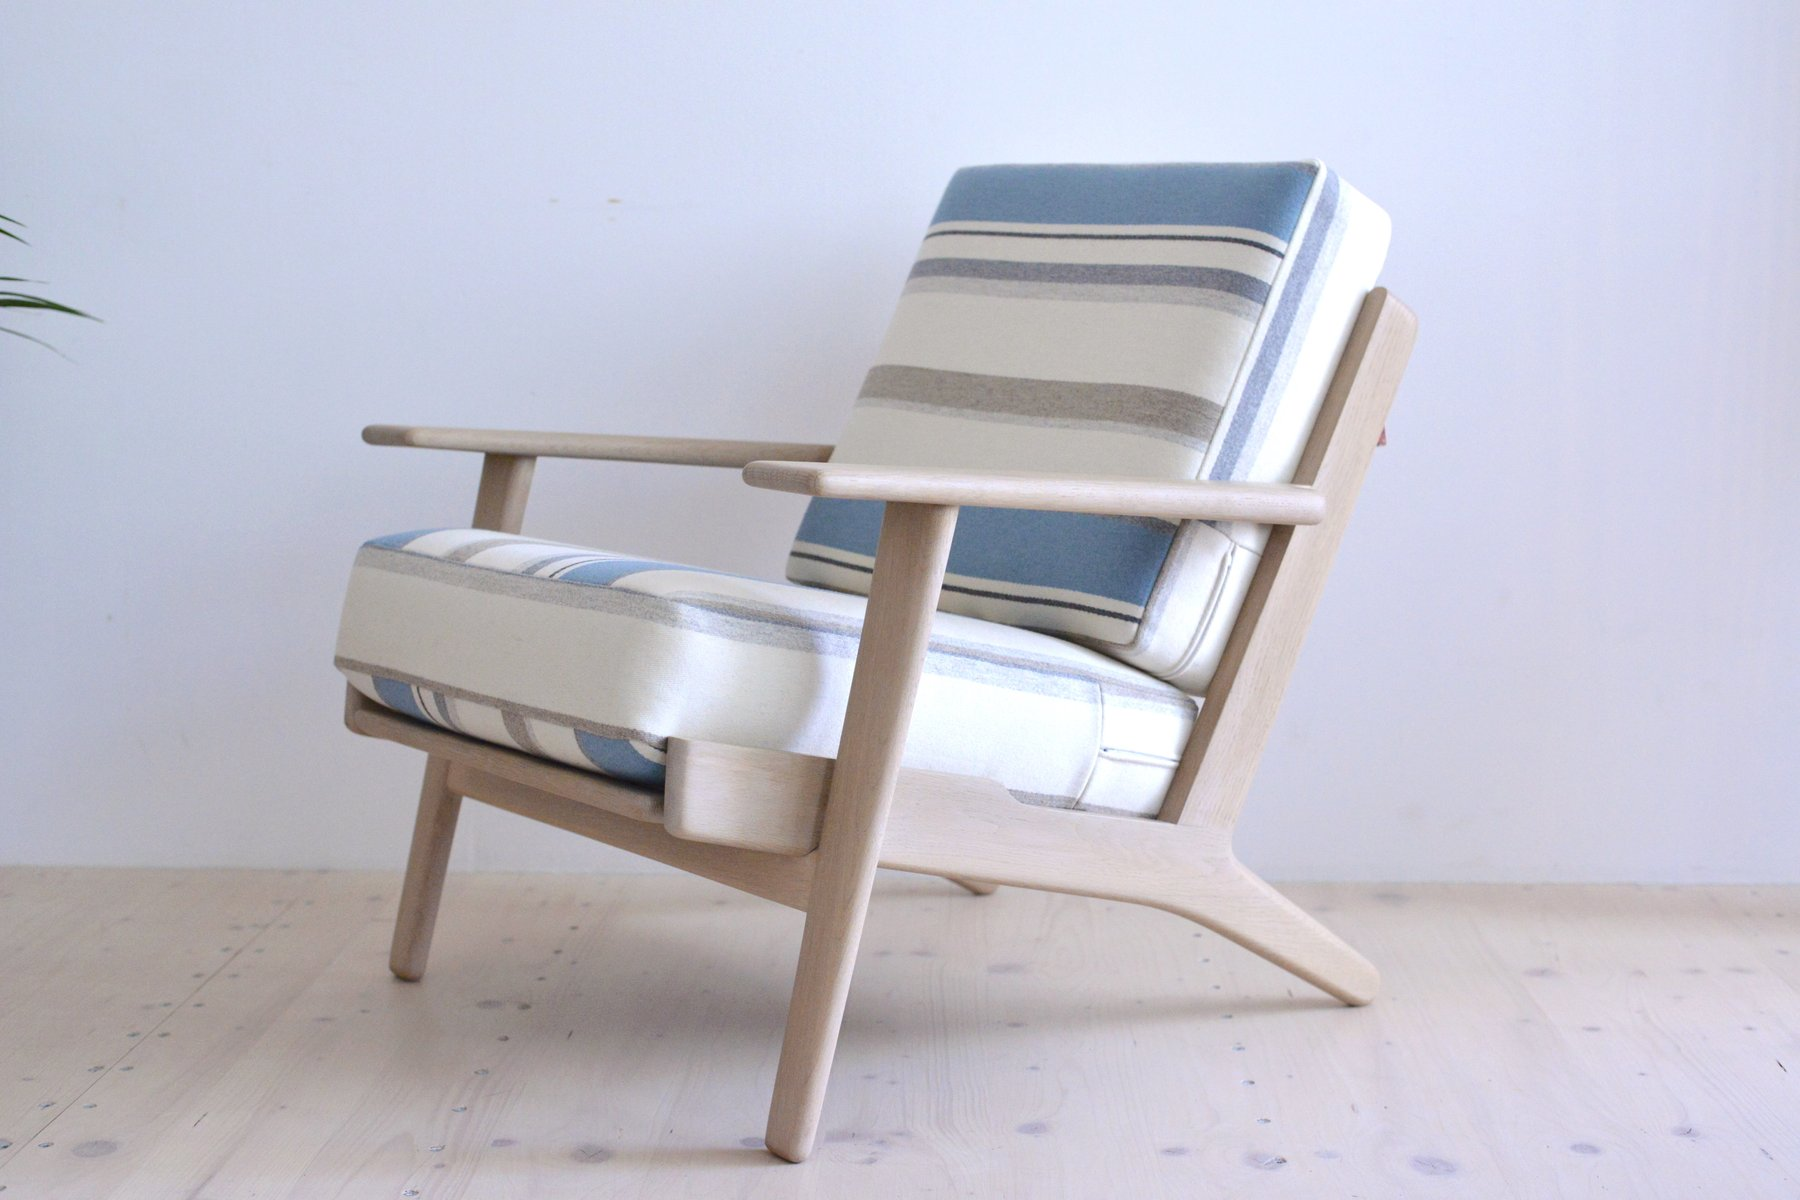 GE290 Lounge Chair By Hans J Wegner For Getama 1950s For